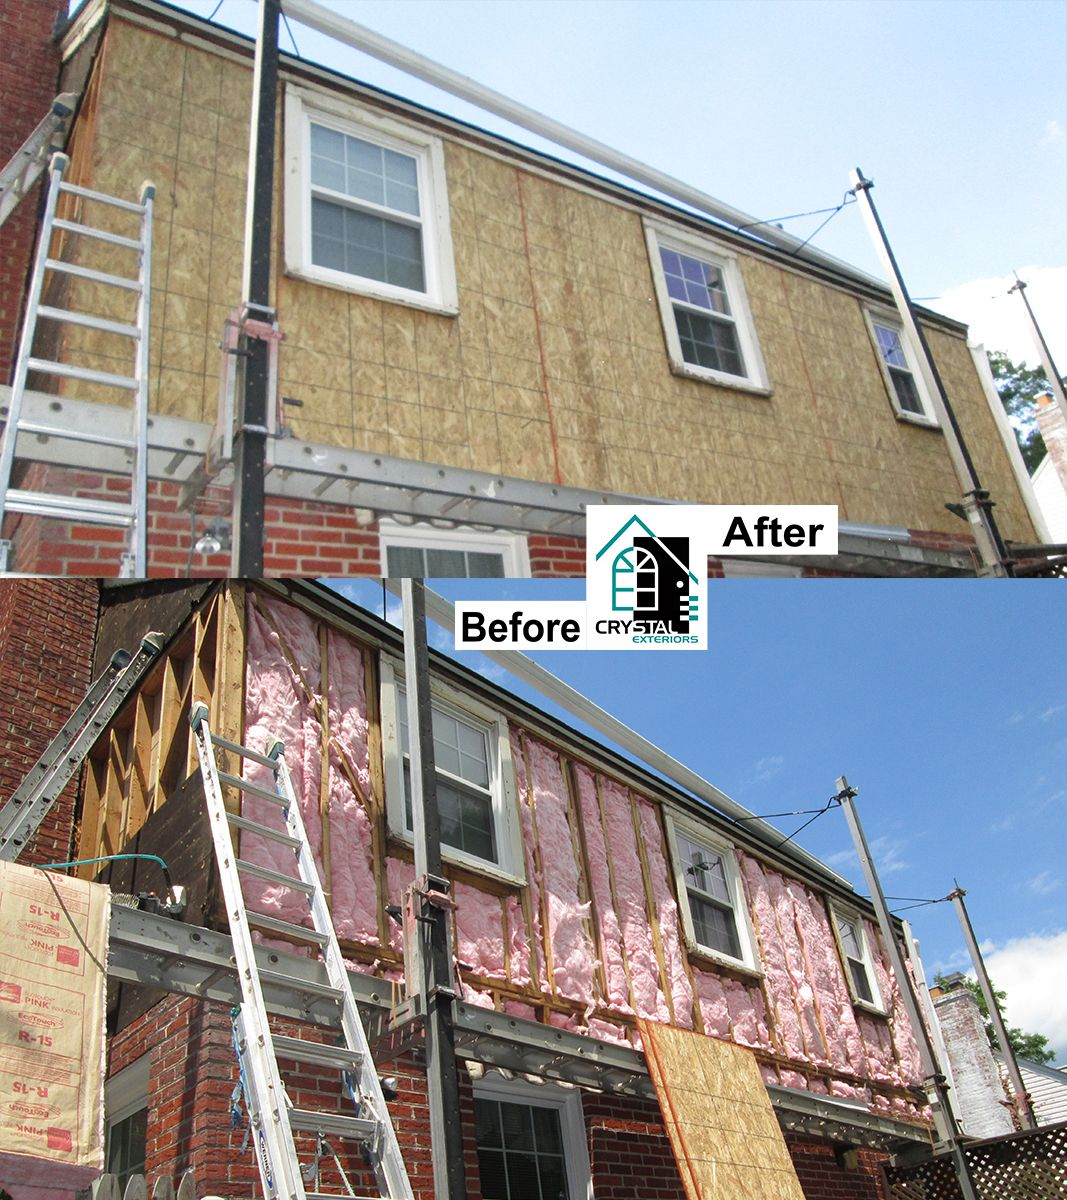 Siding Gallery Siding Replacement Works Crystal Exteriors Insulated Vinyl Siding Replacing Siding Siding